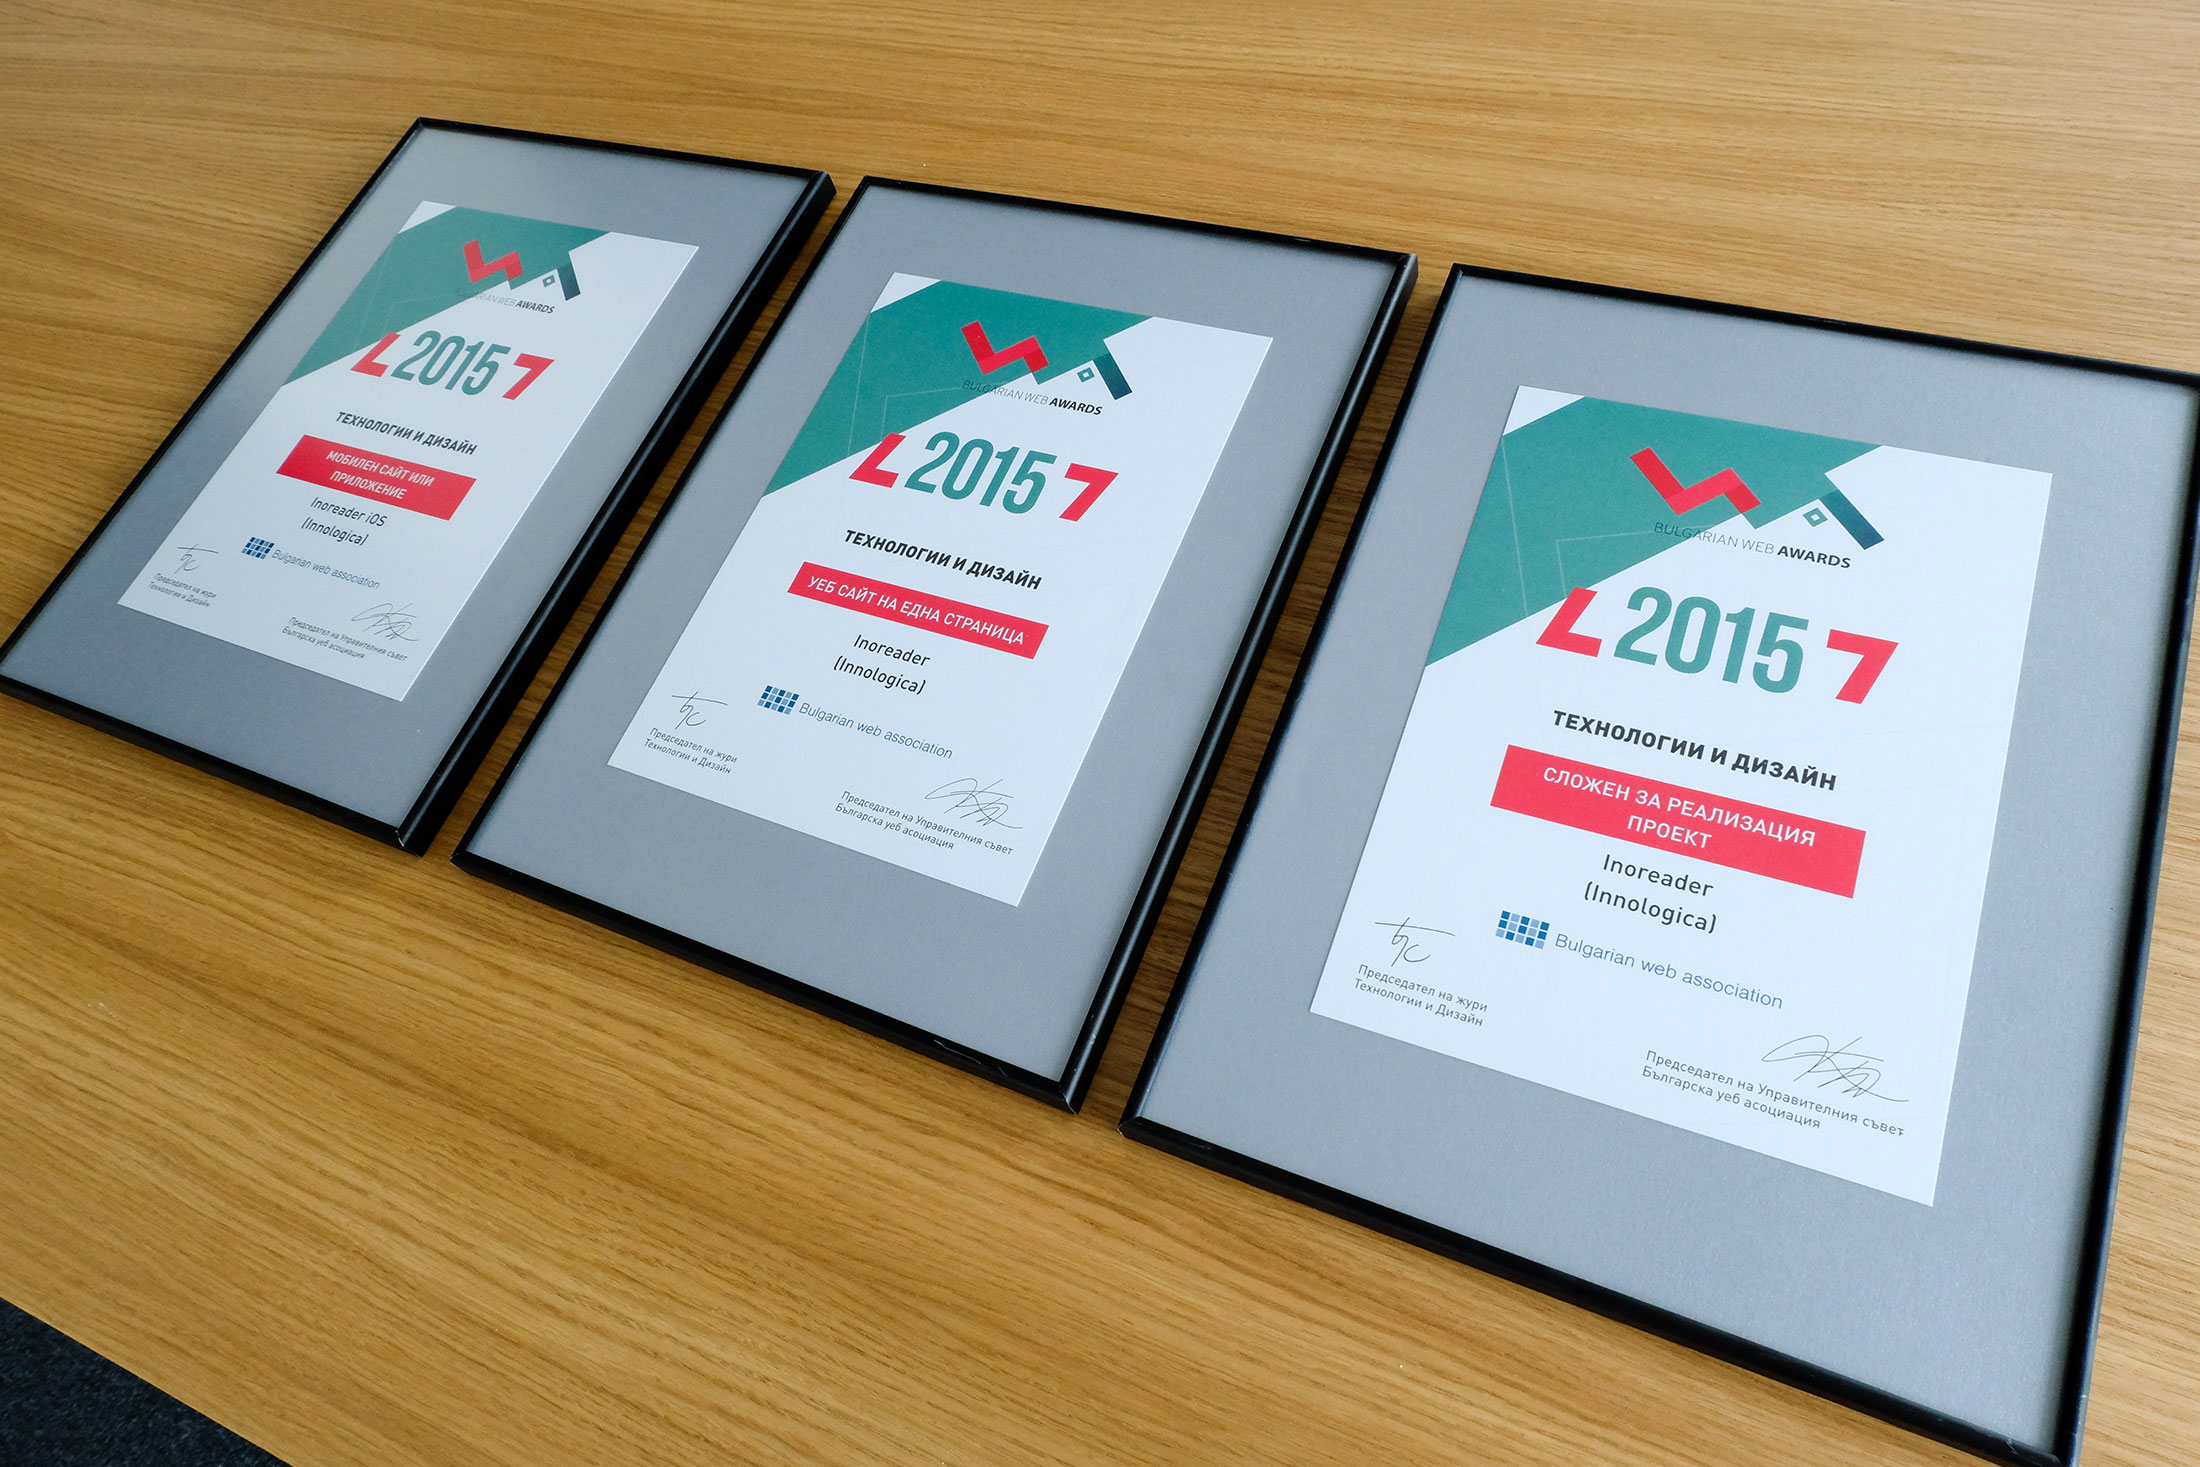 bulgarian web awards 2015